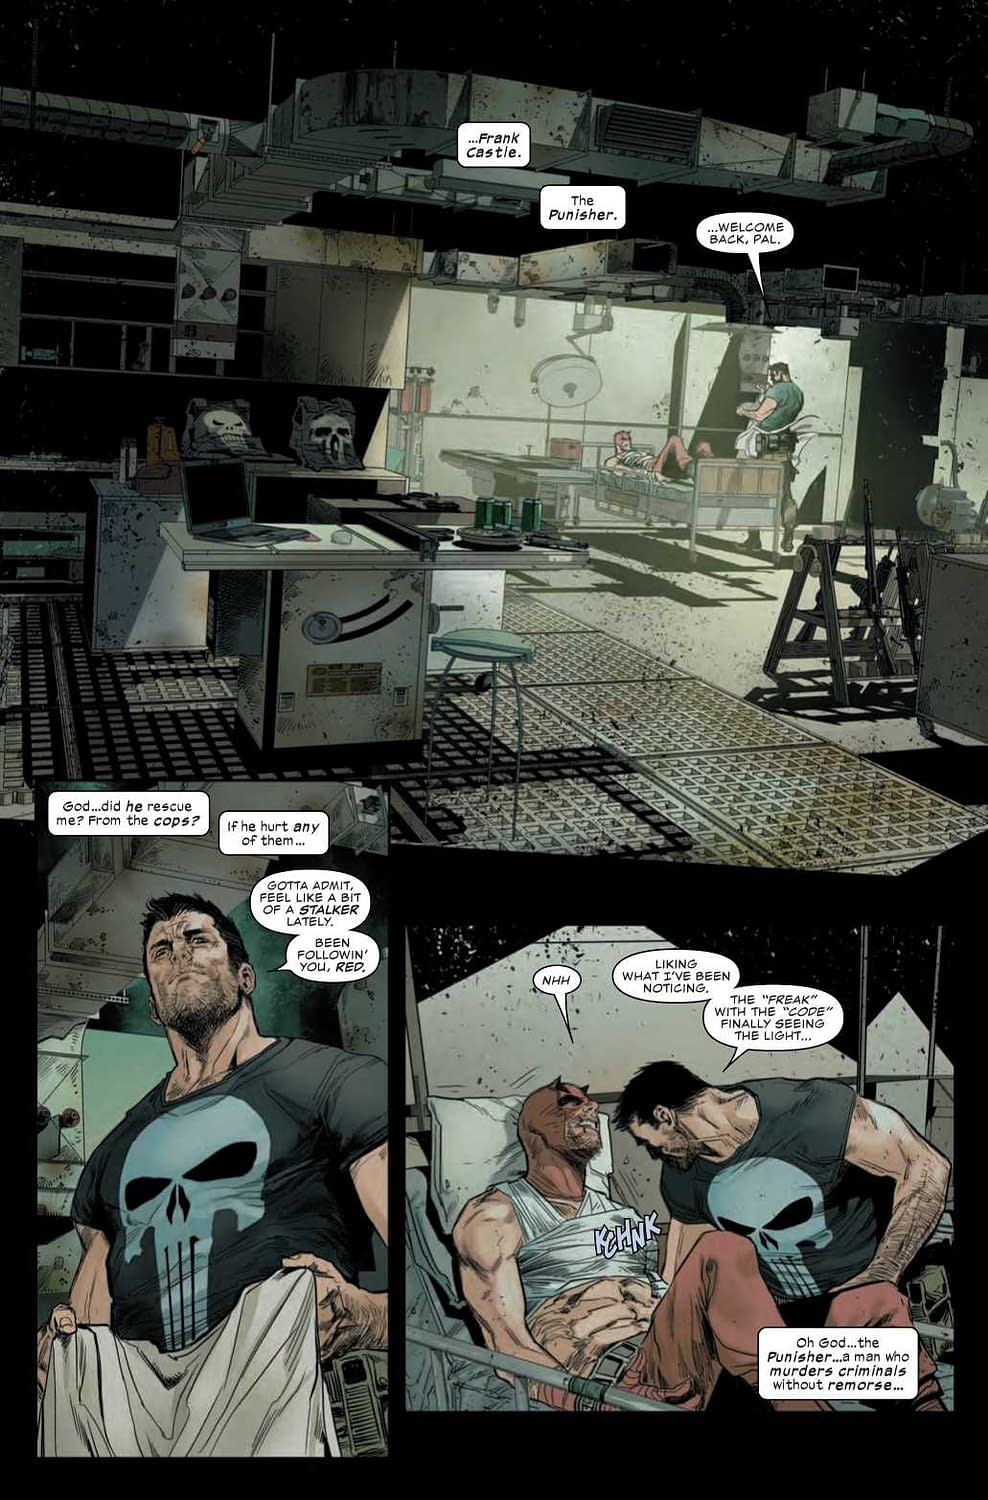 The Punisher Tells Daredevil Like it Is in Daredevil #4 Preview